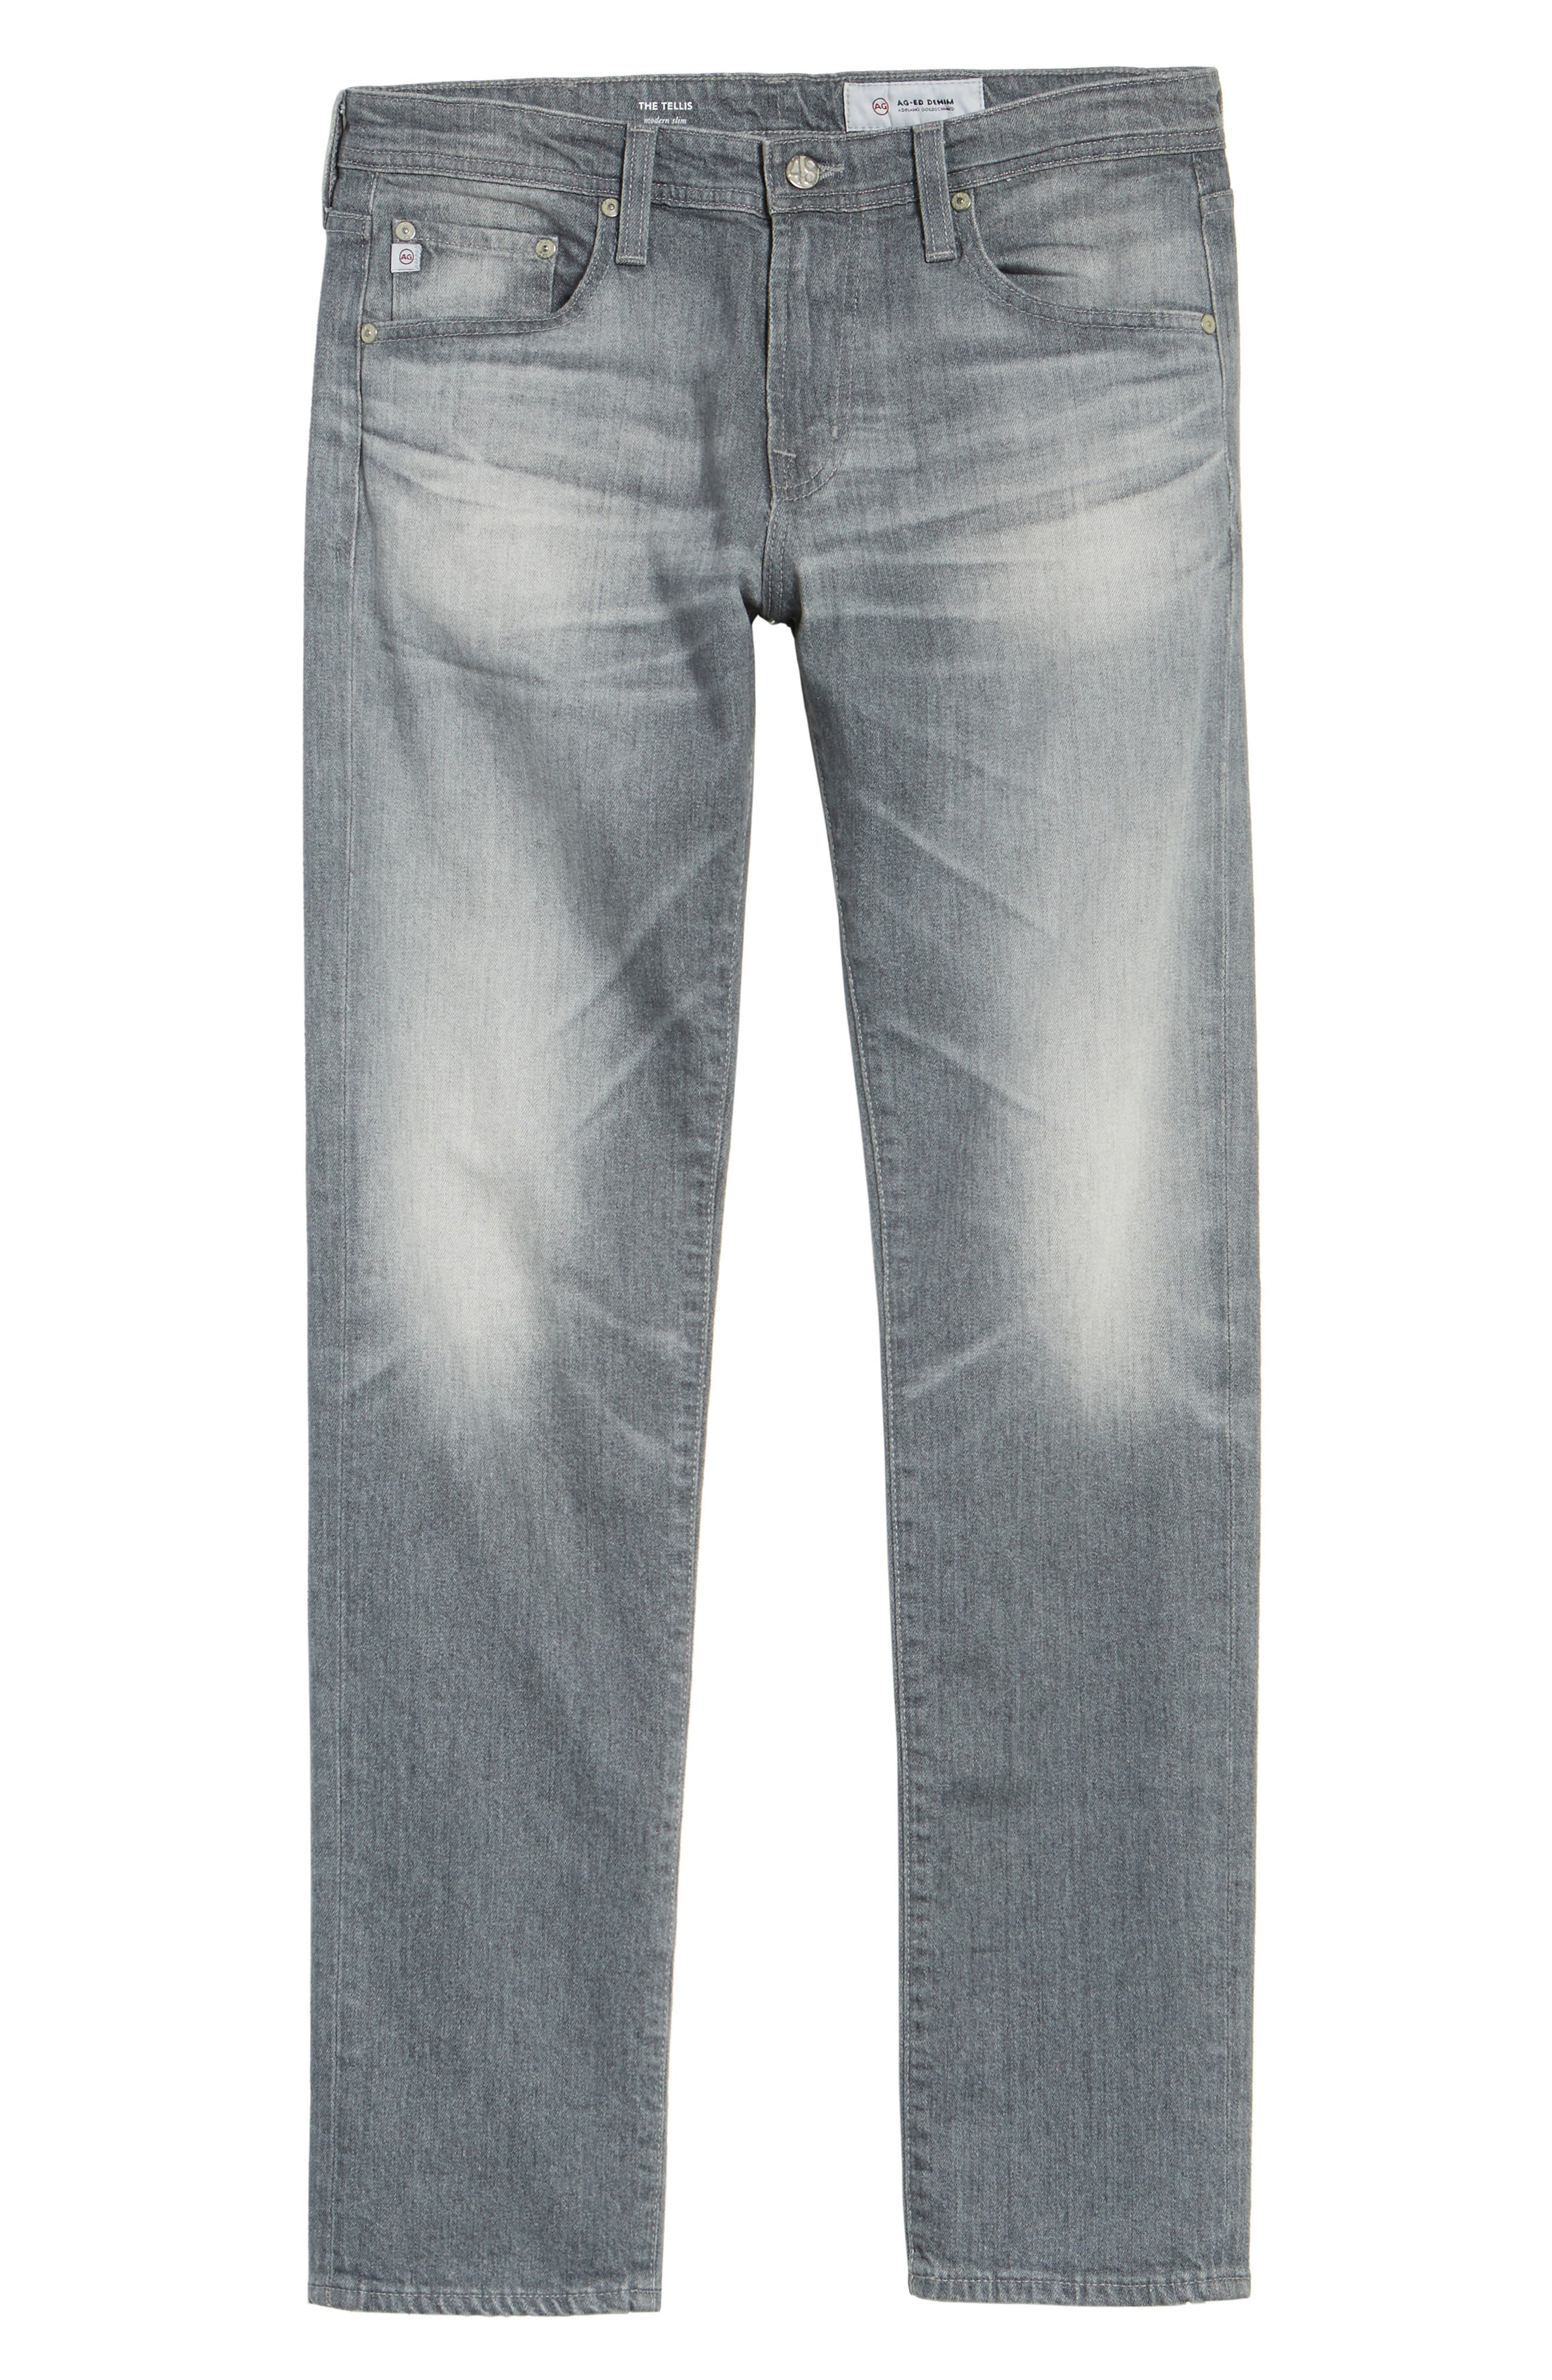 Tellis Modern Slim Fit Jeans,                             Alternate thumbnail 6, color,                             13 Years Fortress